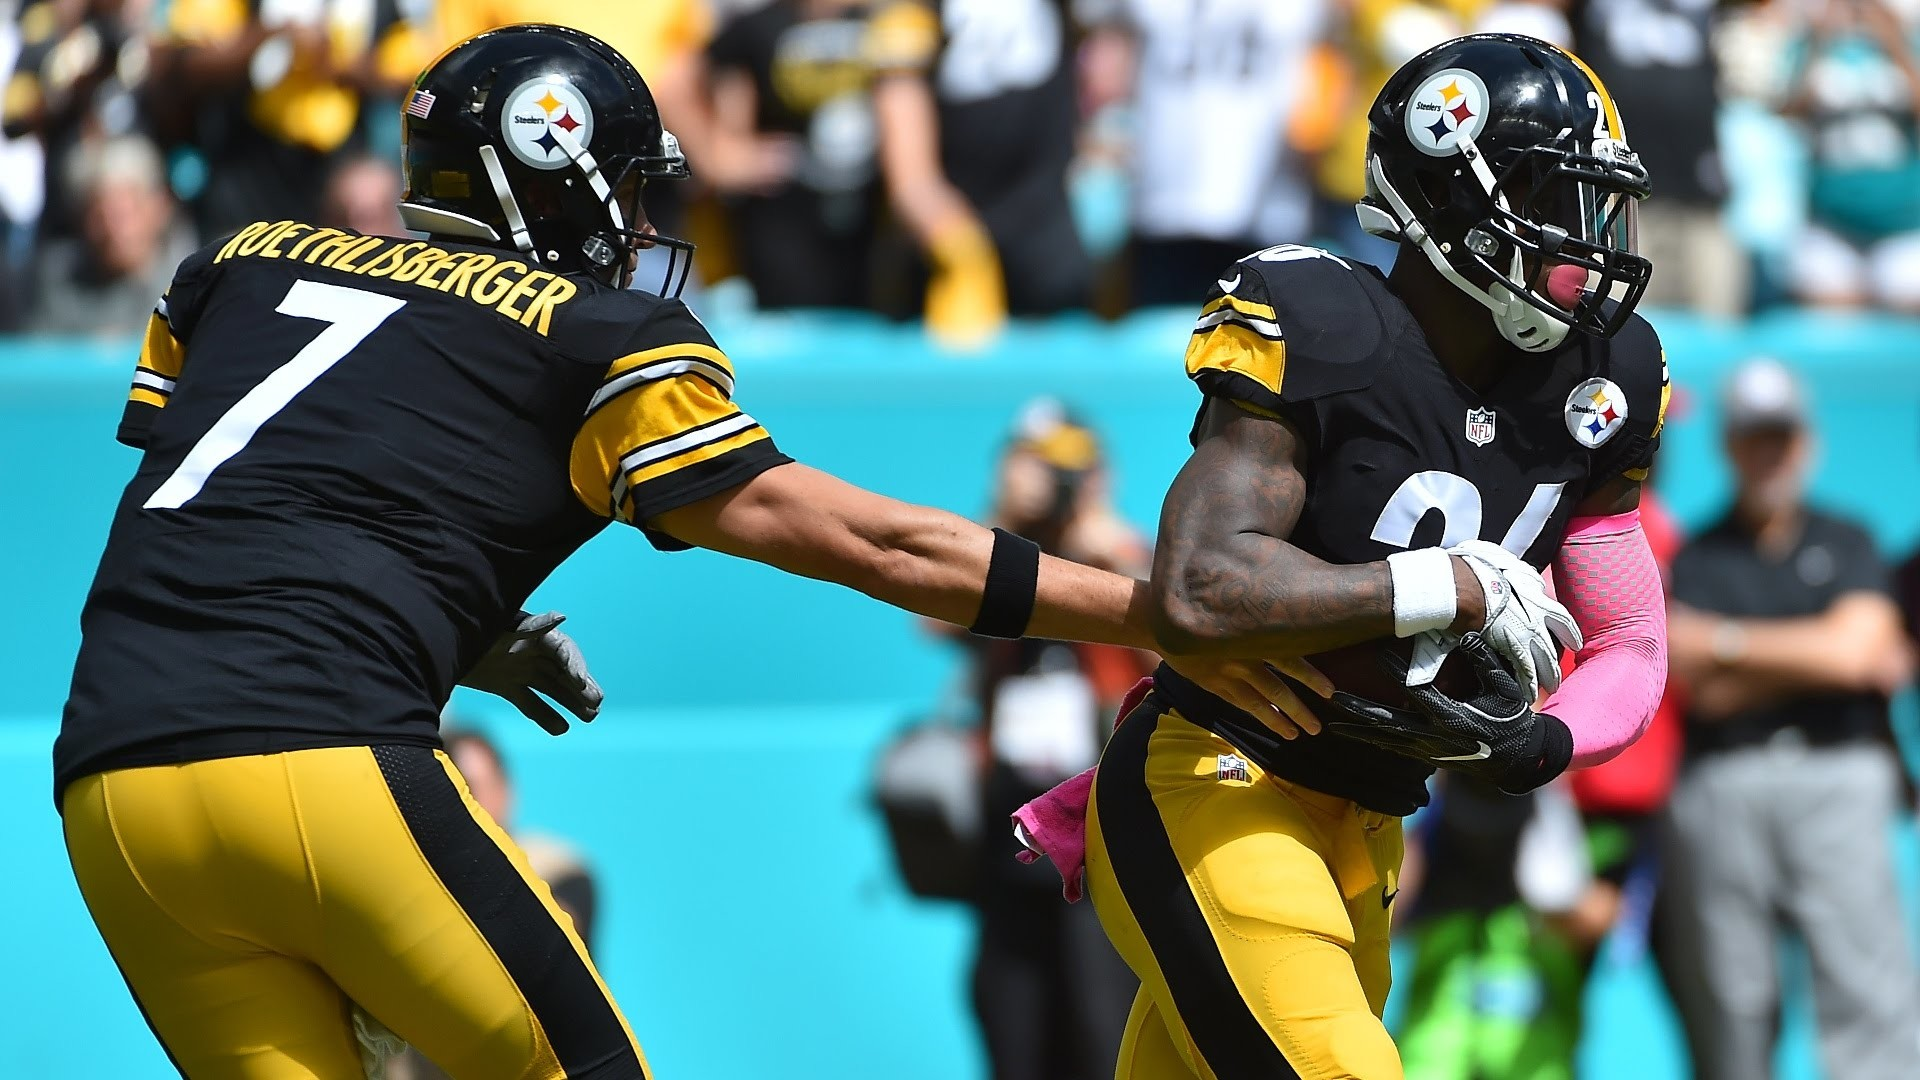 Big Ben Talks Le'Veon for MVP | Listen to Steelers QB Ben Roethlisberger  campaign for Le'Veon Bell